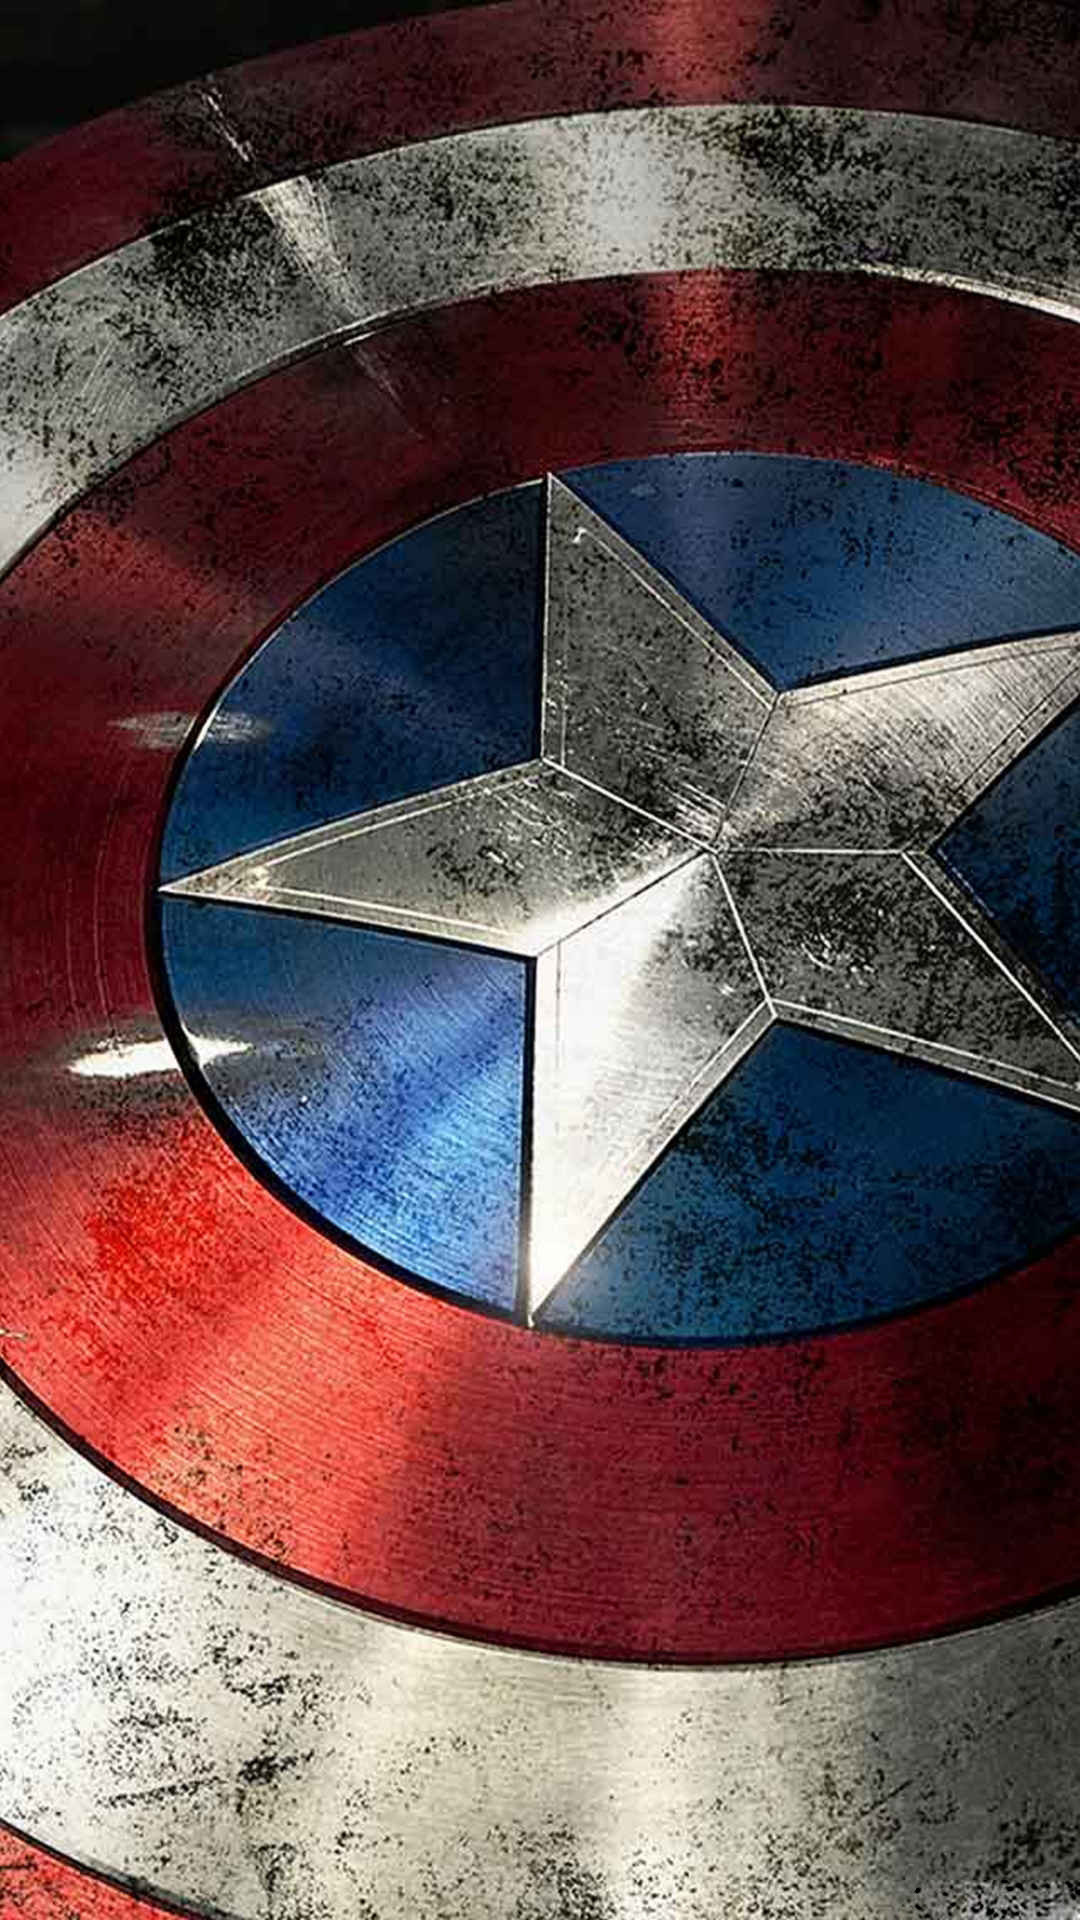 1080x1920 Captain America TeamCap Tap To See More Superheroes Glow With Neon Light Apple IPhone